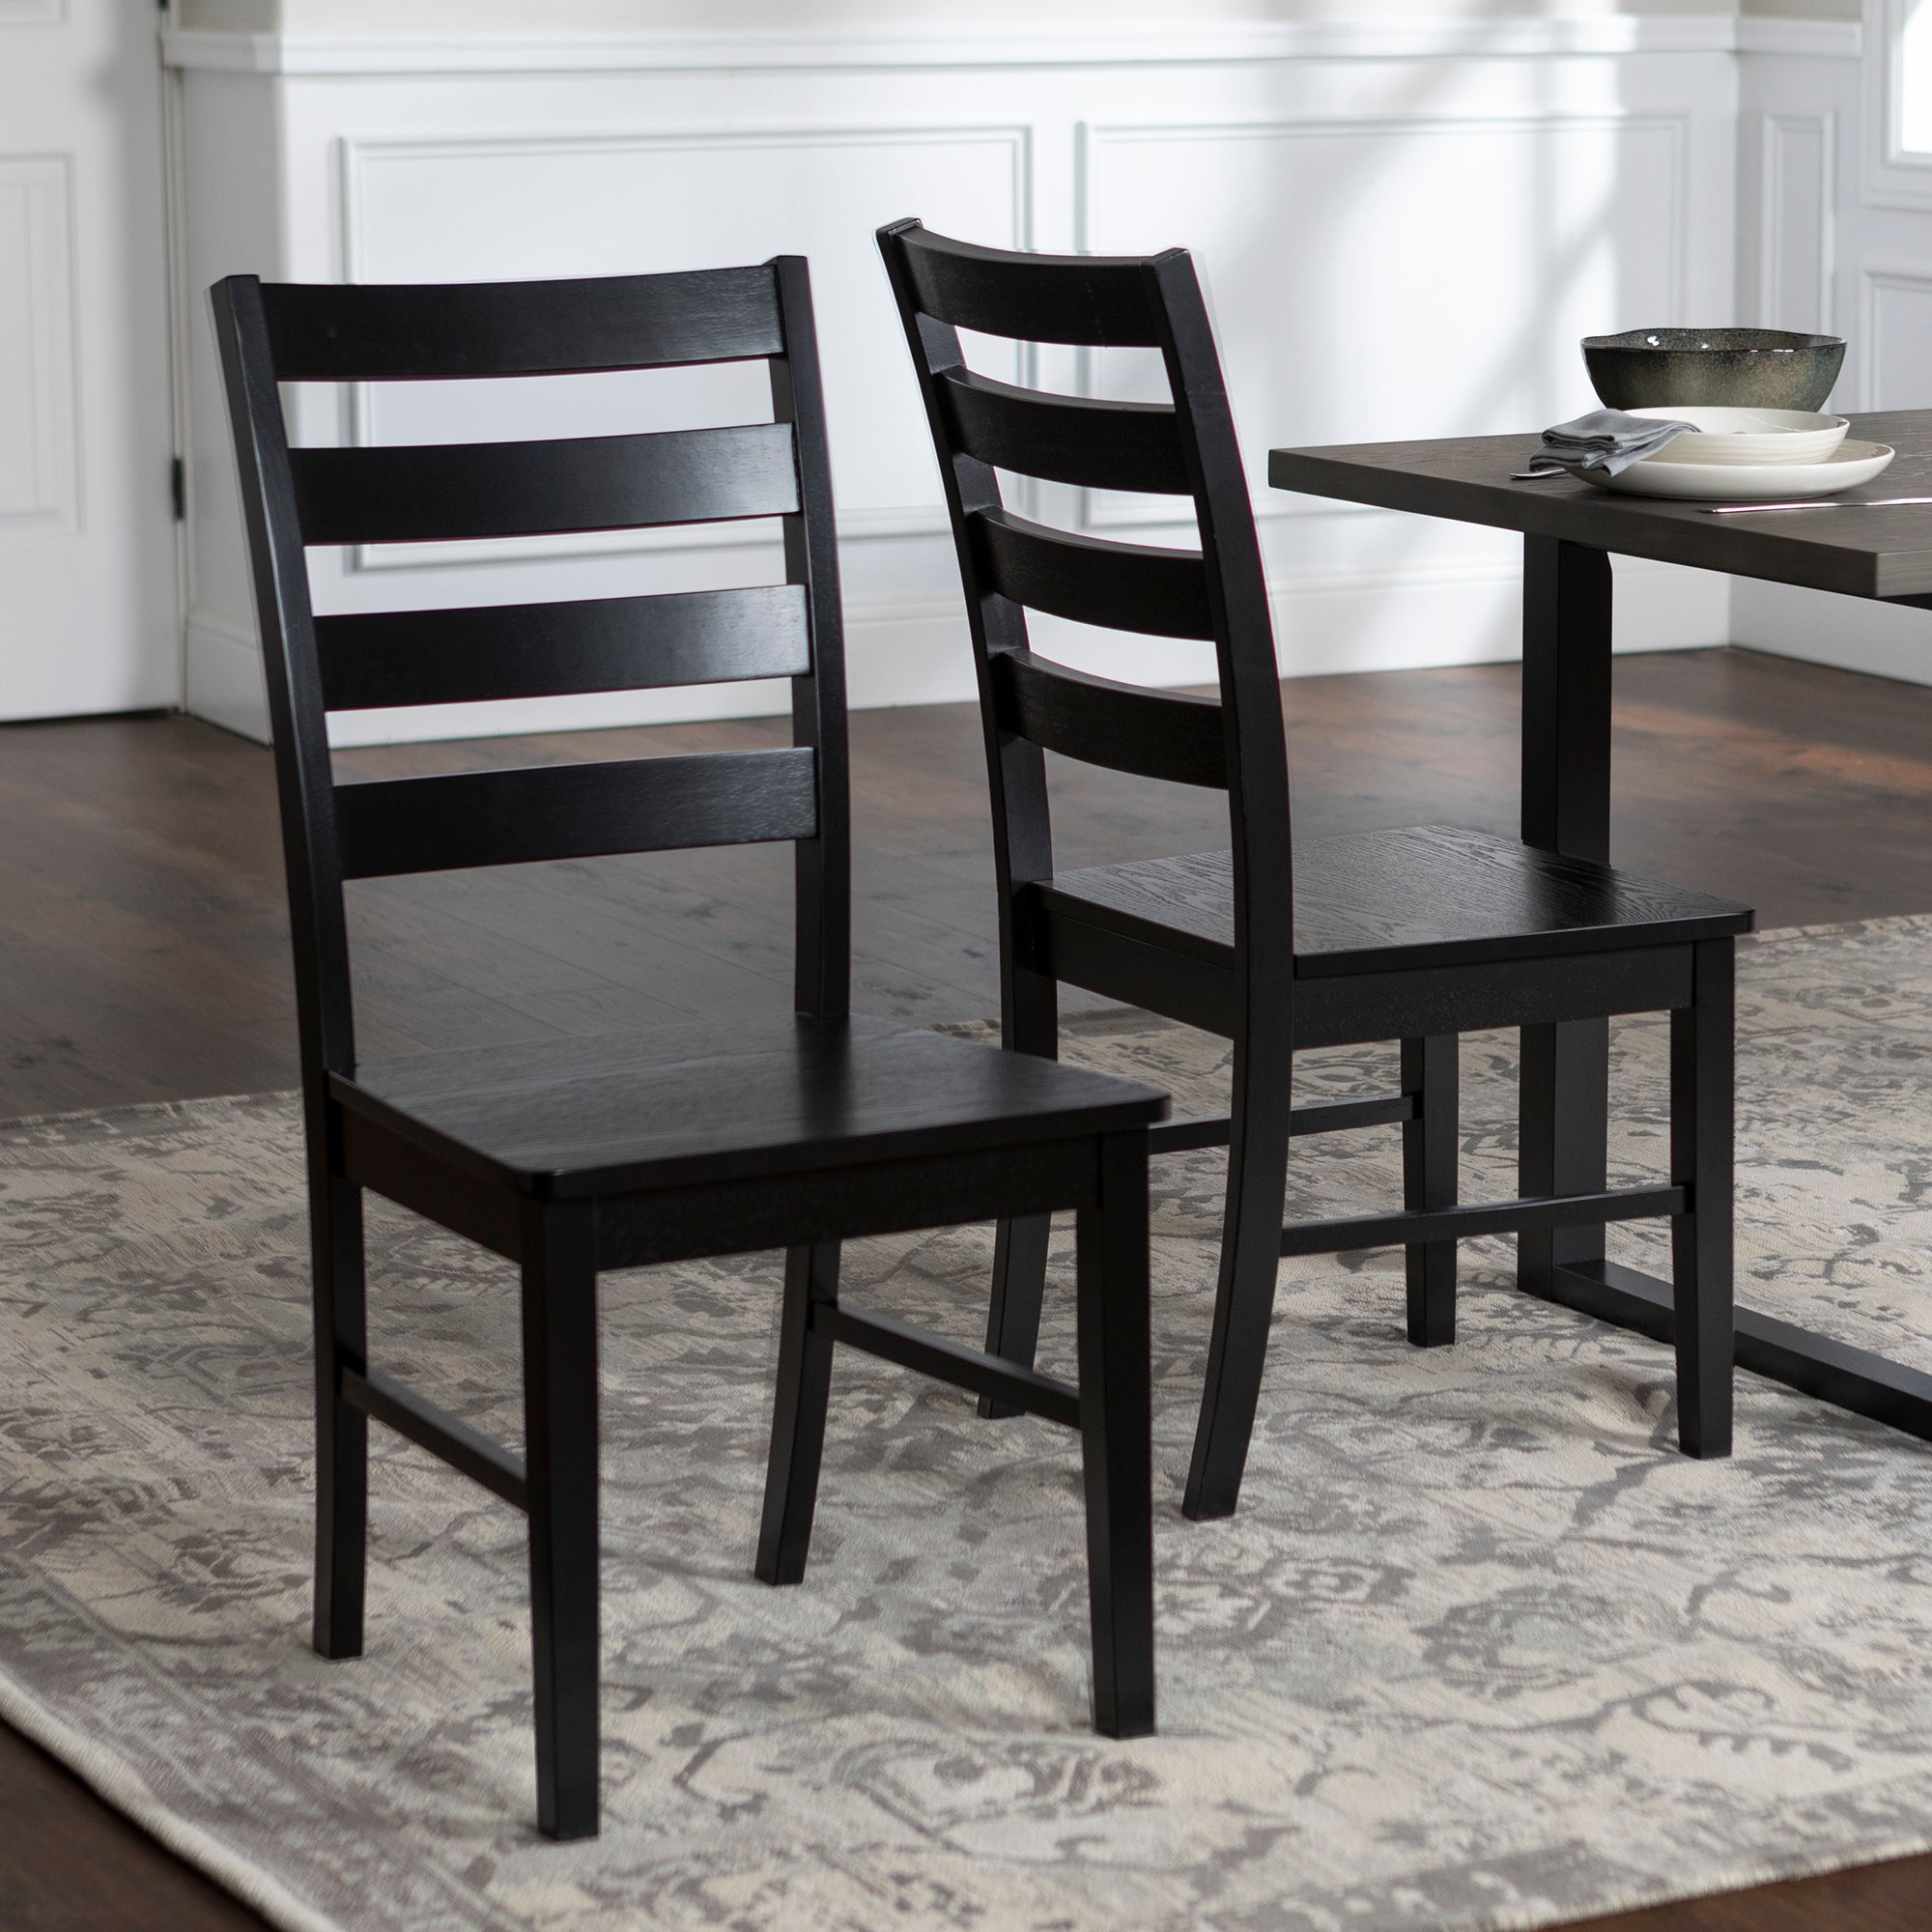 Wood Ladder Back Dining Side Chairs Set Of 2 On Sale Overstock 17181588 Black